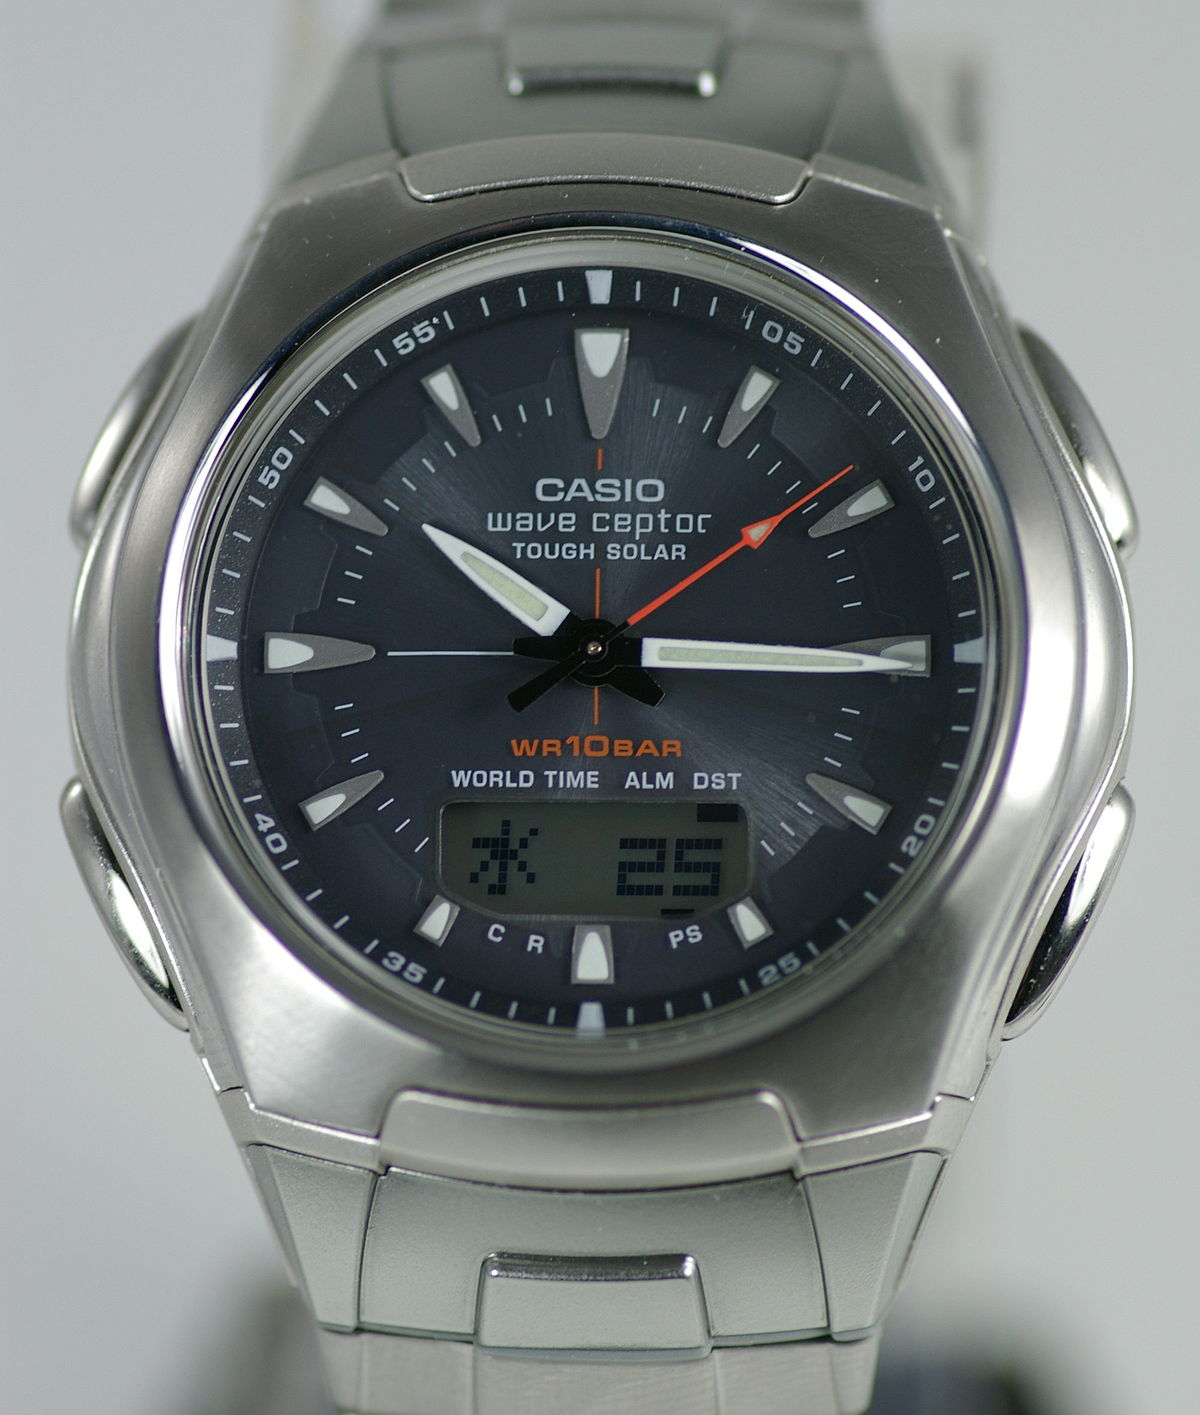 casio wave ceptor wikipedia